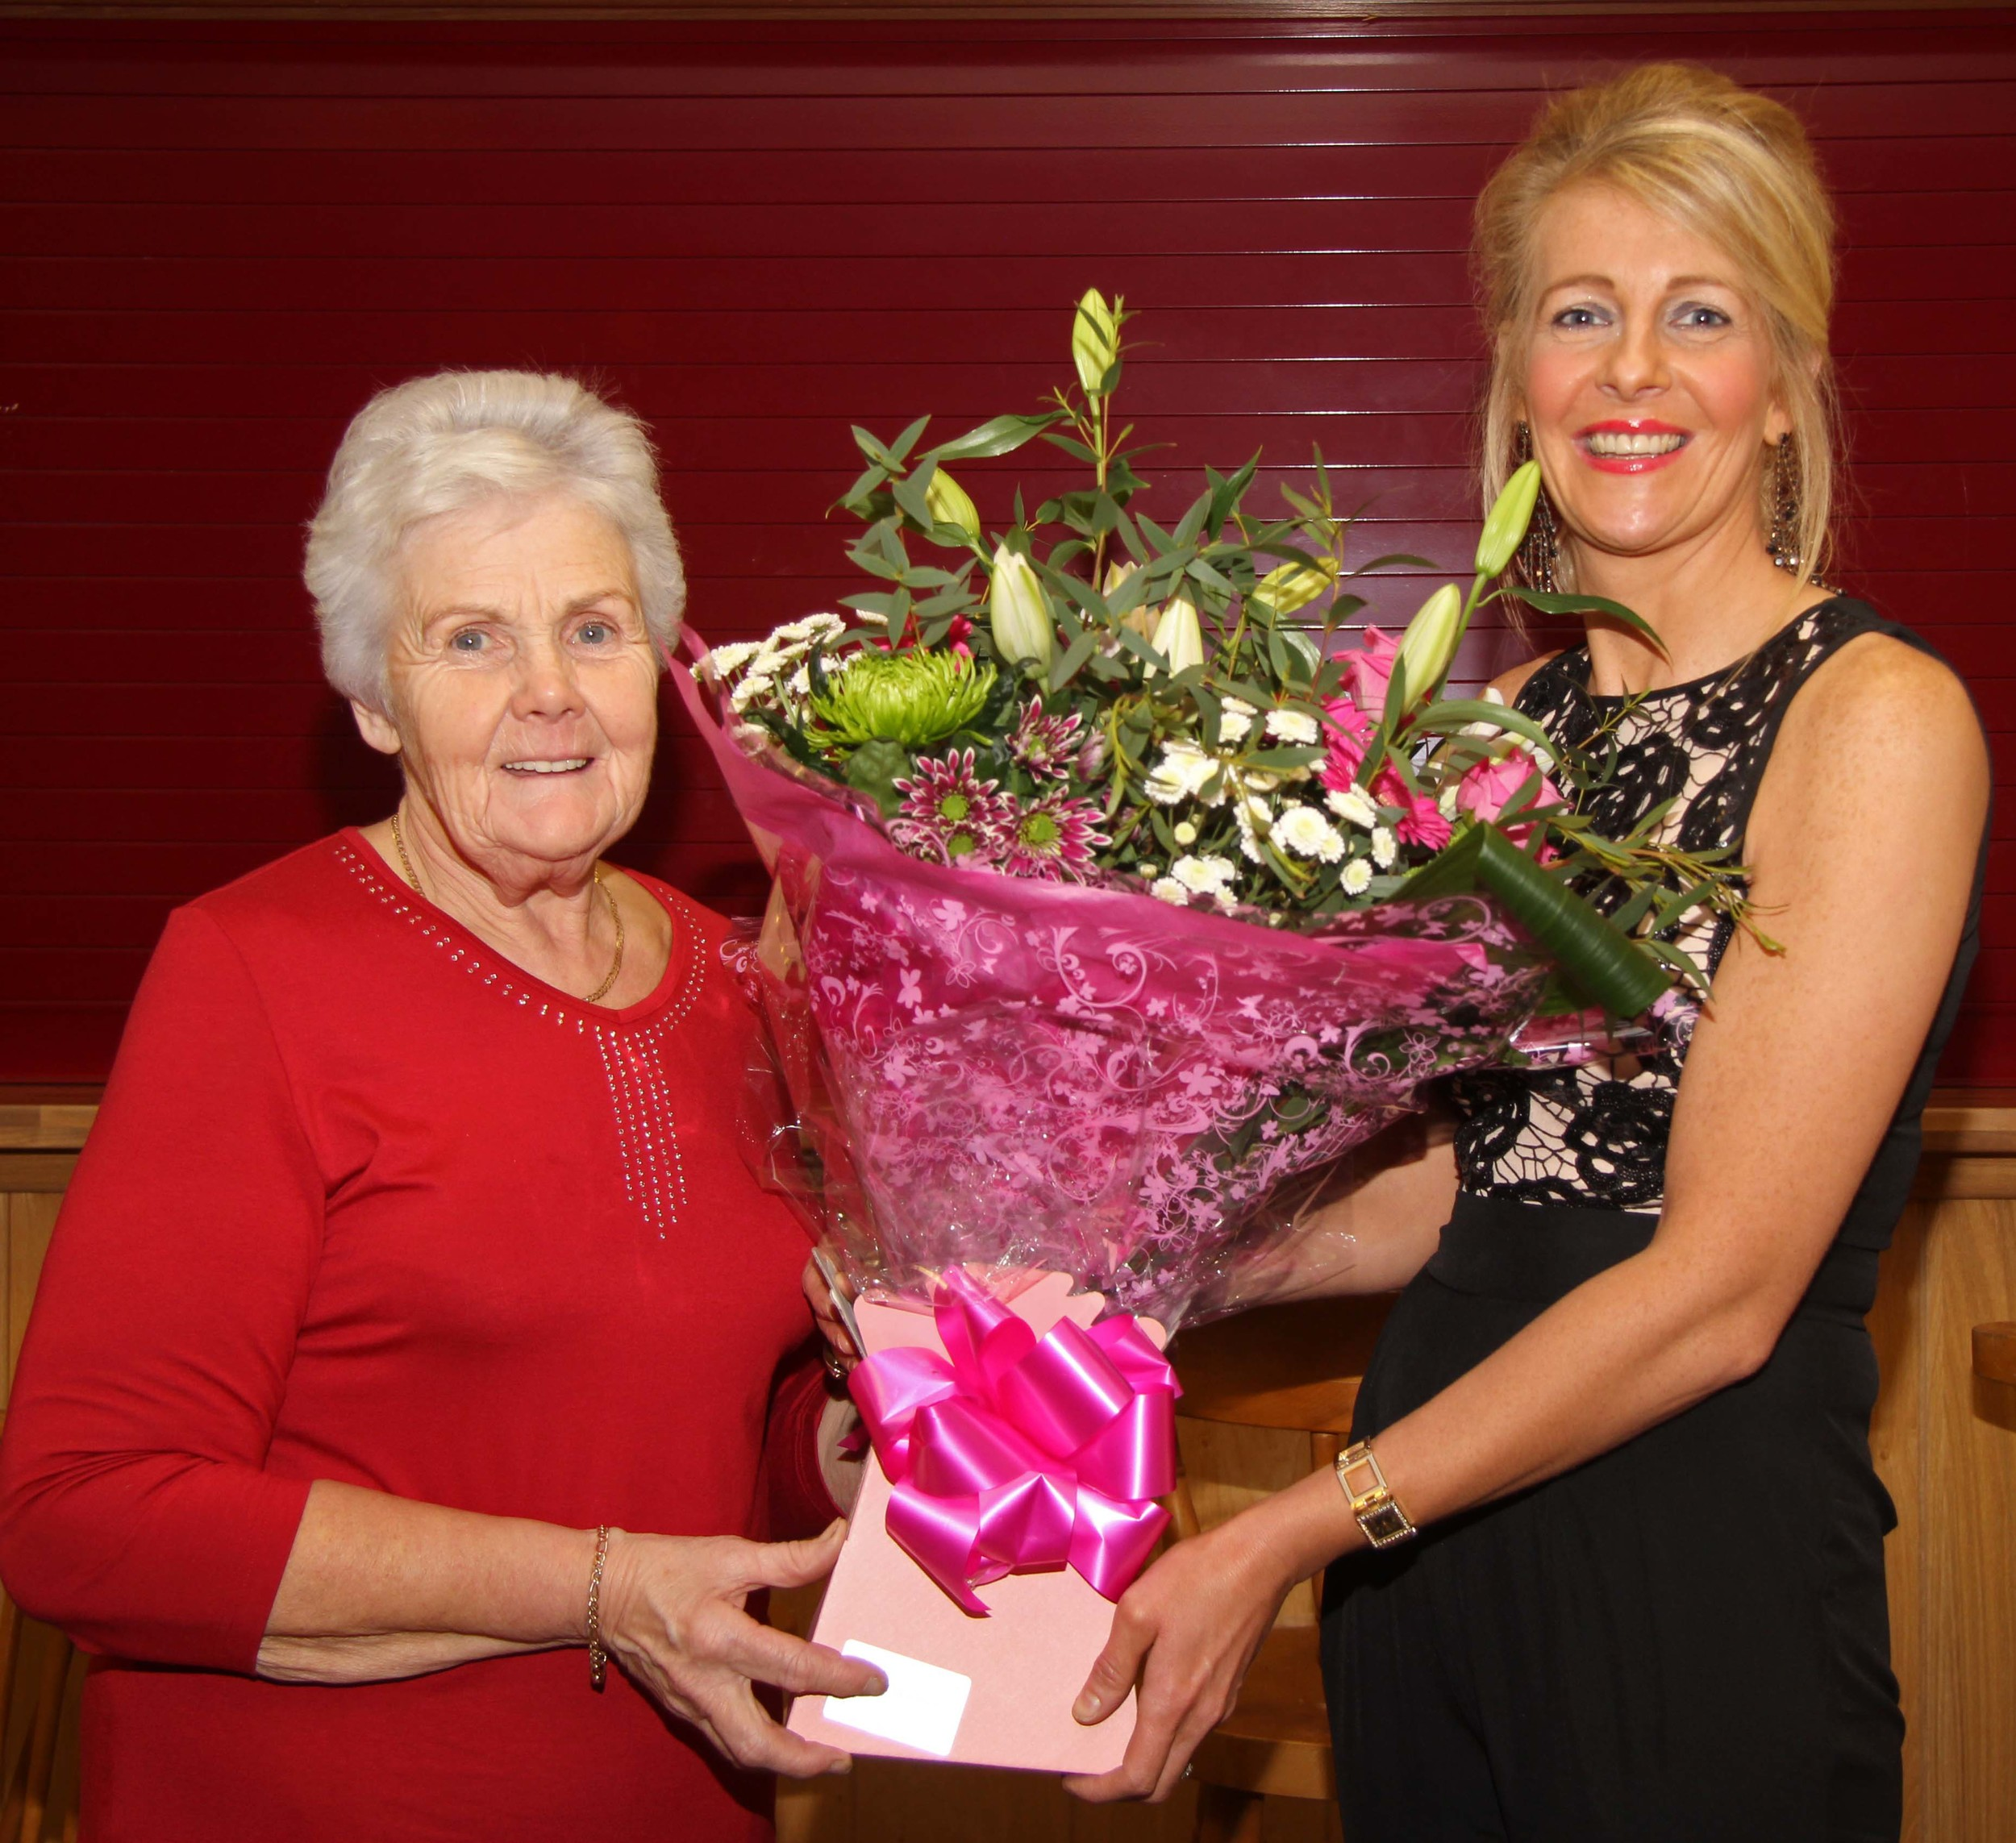 Committee member Thelma Gorman makes a presentation to the chairman's wife Sandra Rodgers.